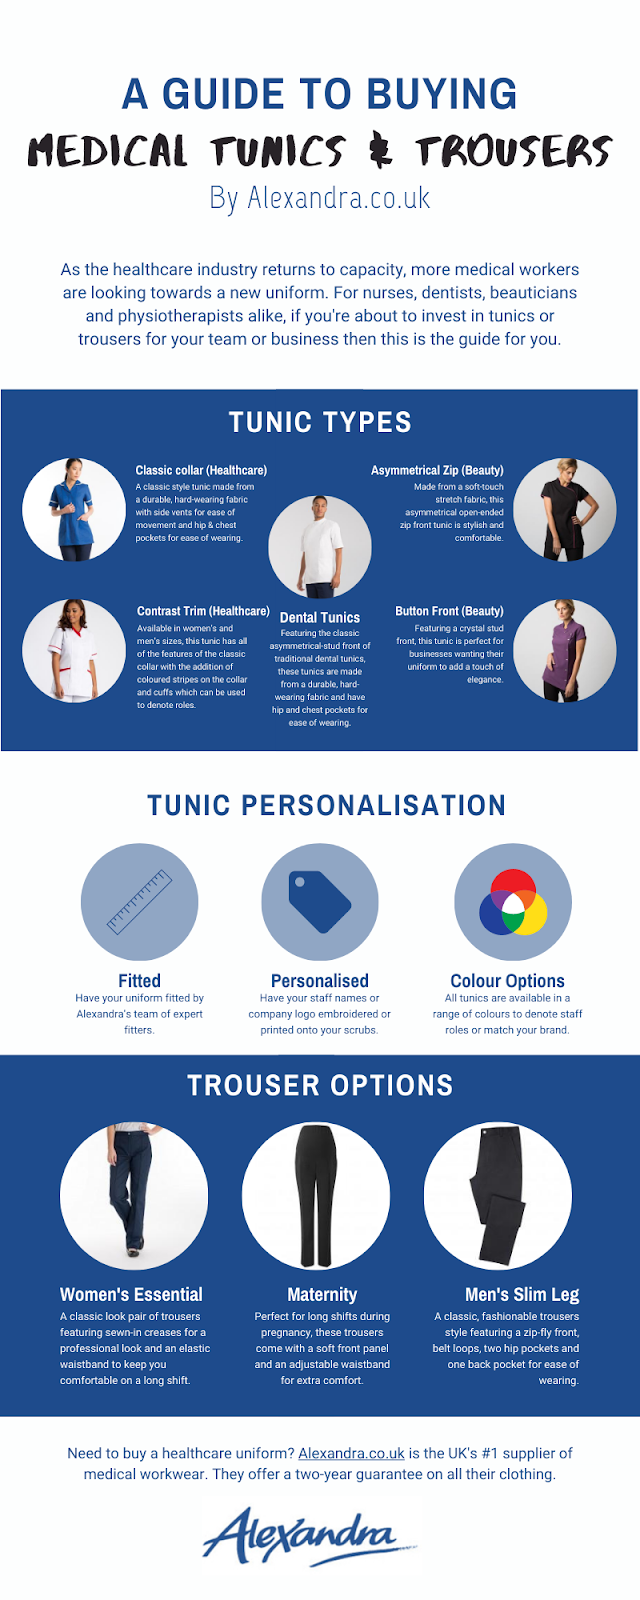 An infographic guide to buying nurse tunics and trousers